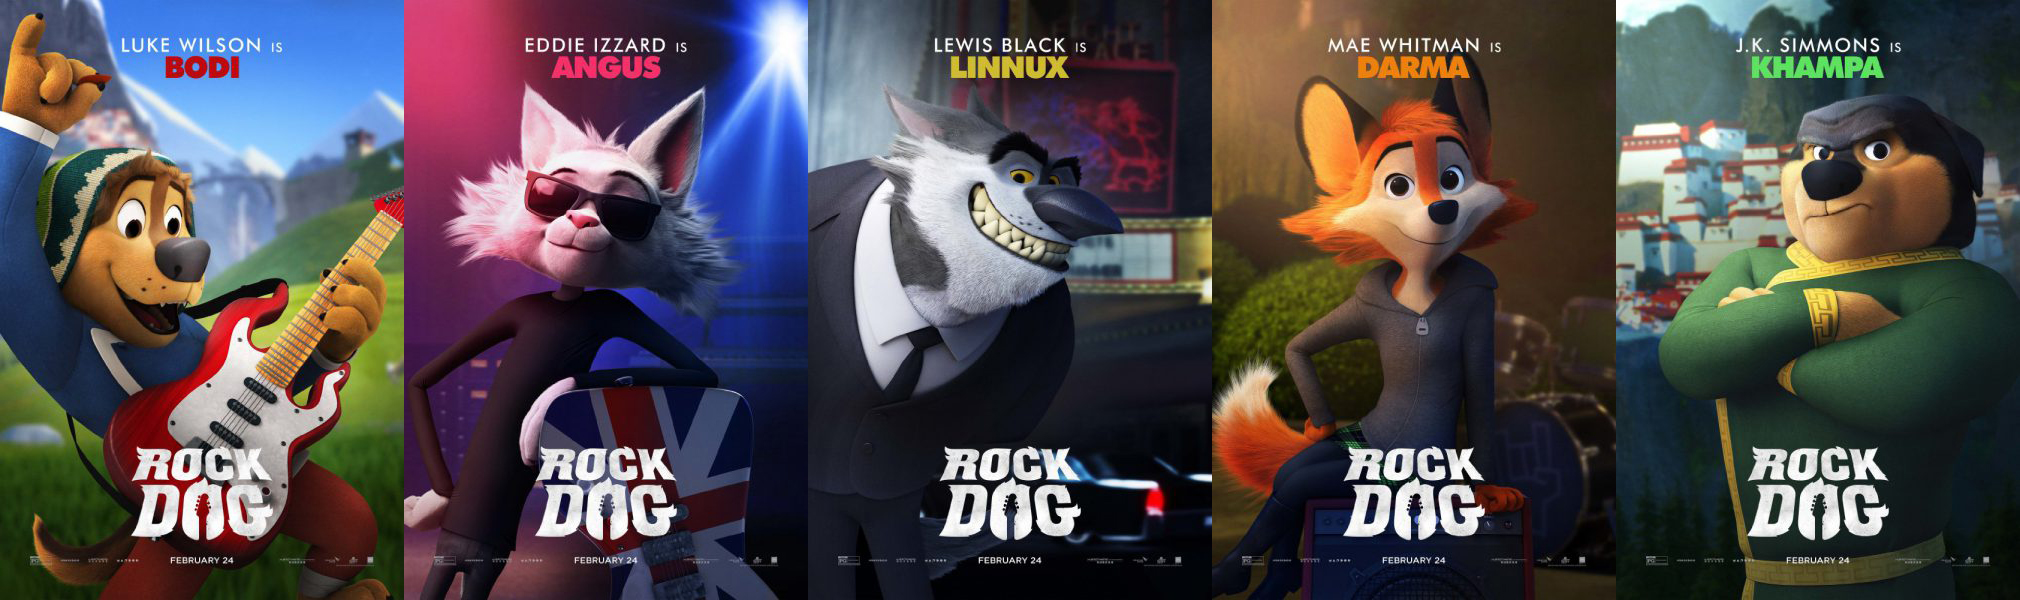 Movie Review Rock Dog